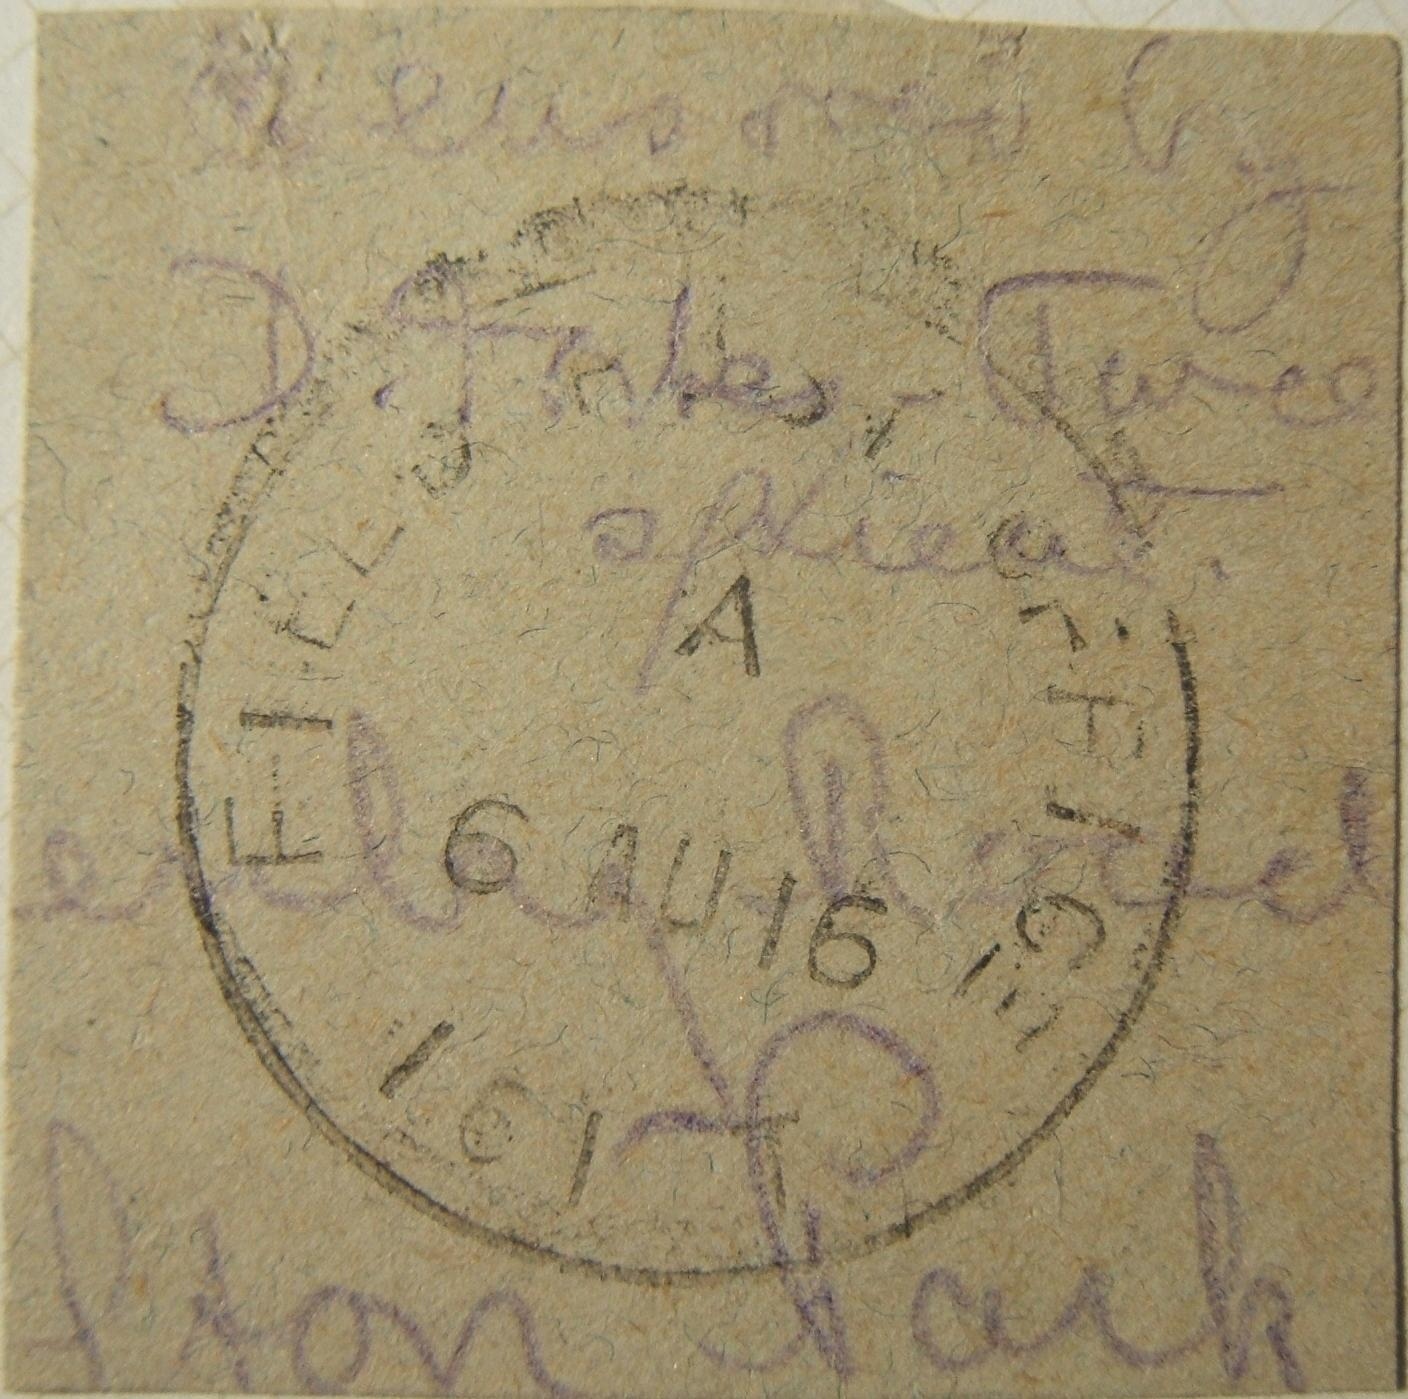 WWI Egypt British military mail earliest known 1916 FPO 161T postmark, on cutout